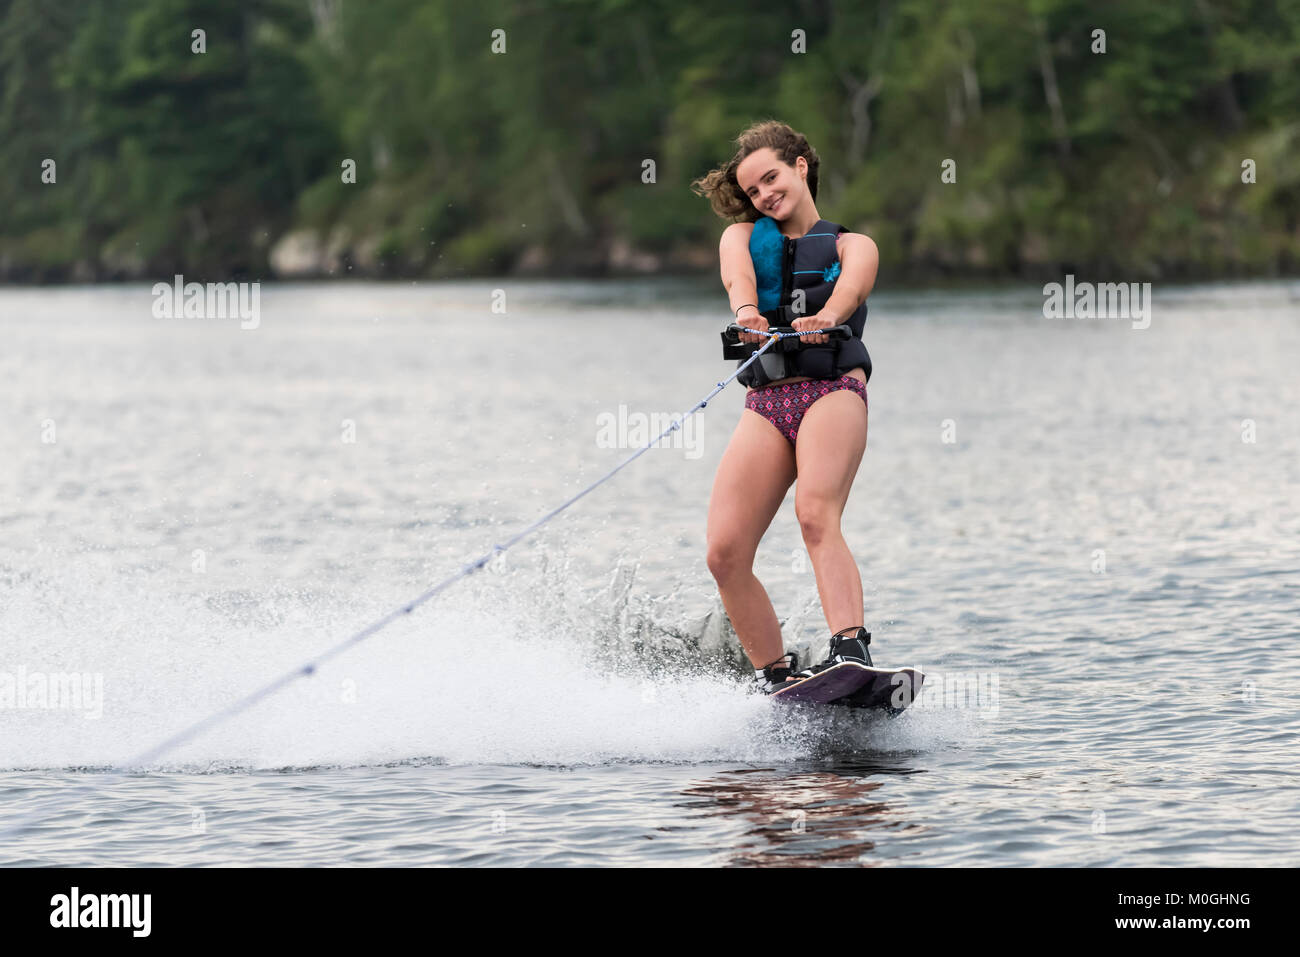 A teenage girl wakeboarding behind a boat on a lake; Lake of the Woods, Ontario, Canada - Stock Image